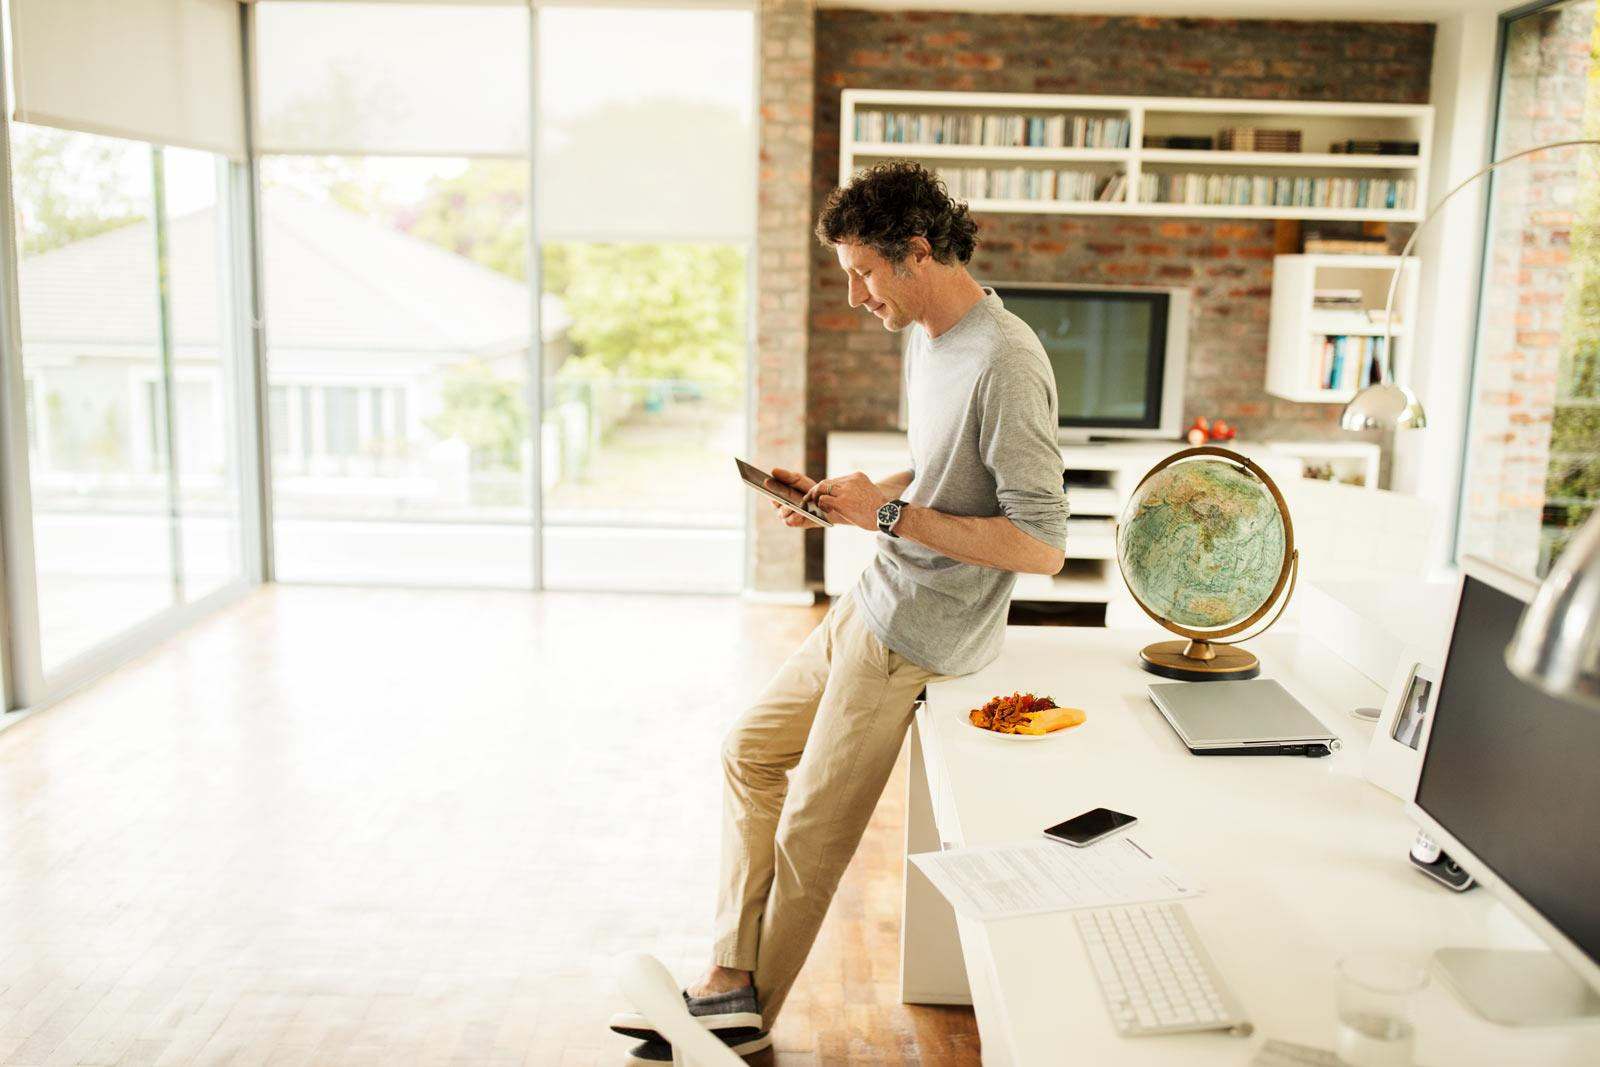 man-with-tablet-standing-in-office